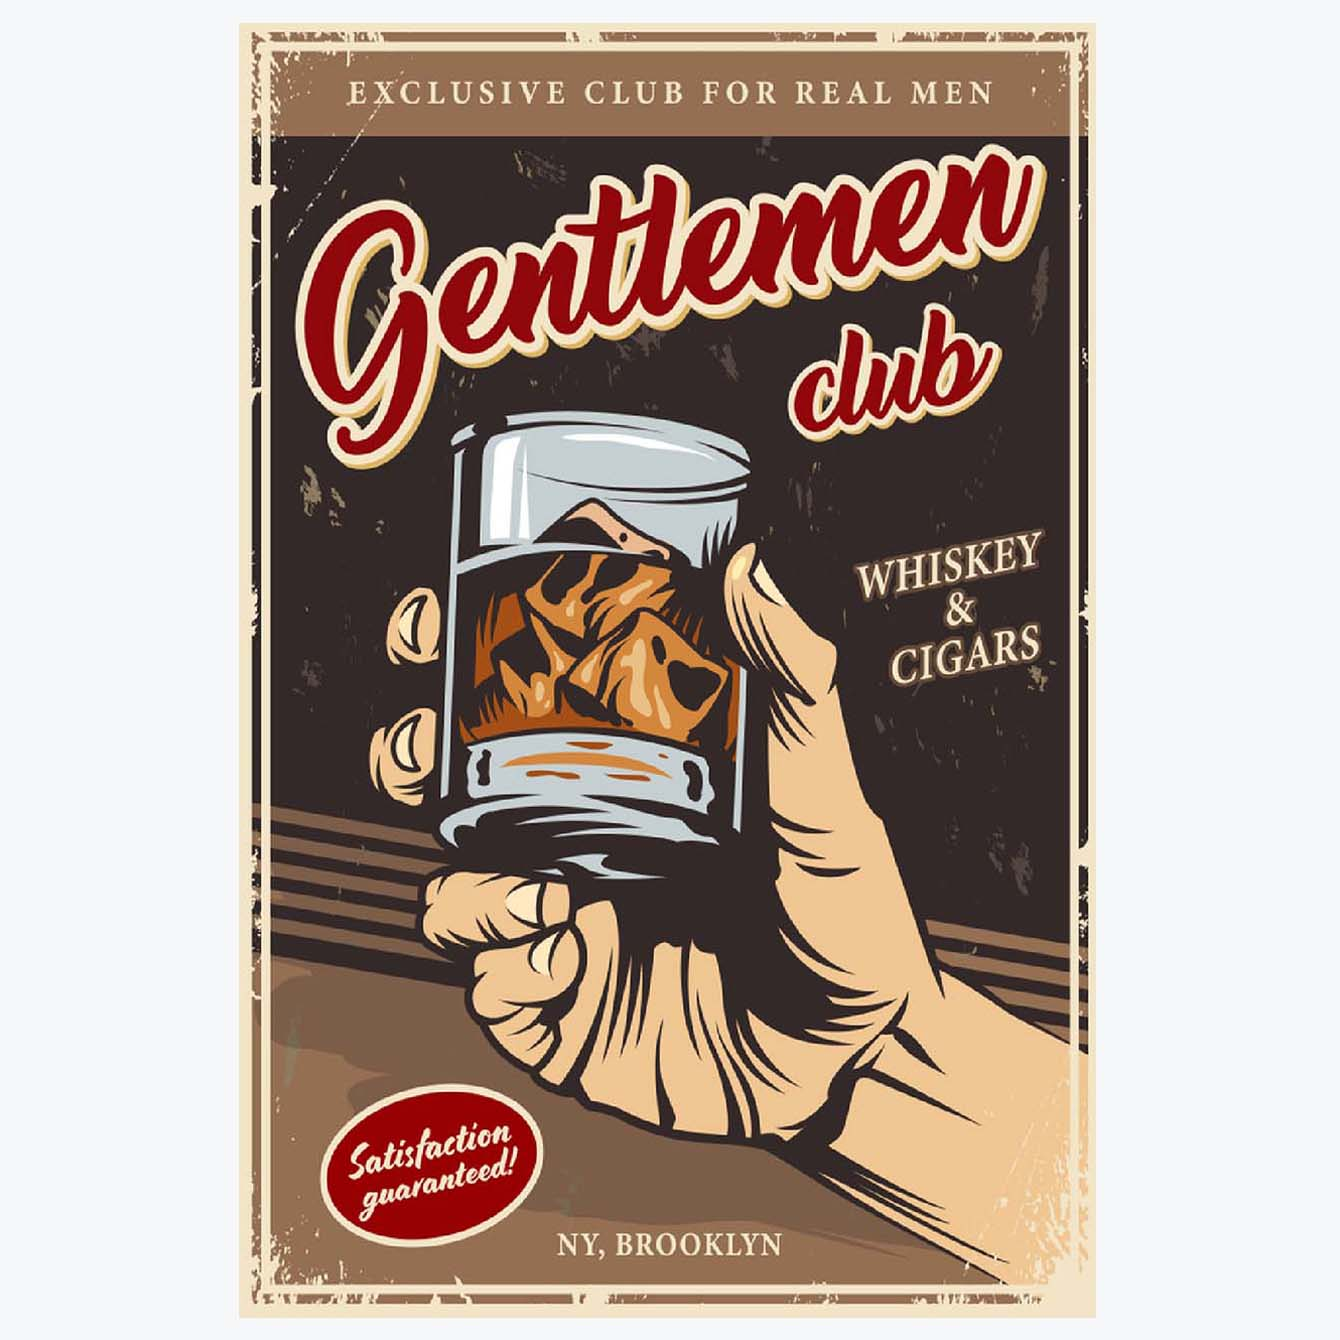 Gentleman club Alcohol Posters